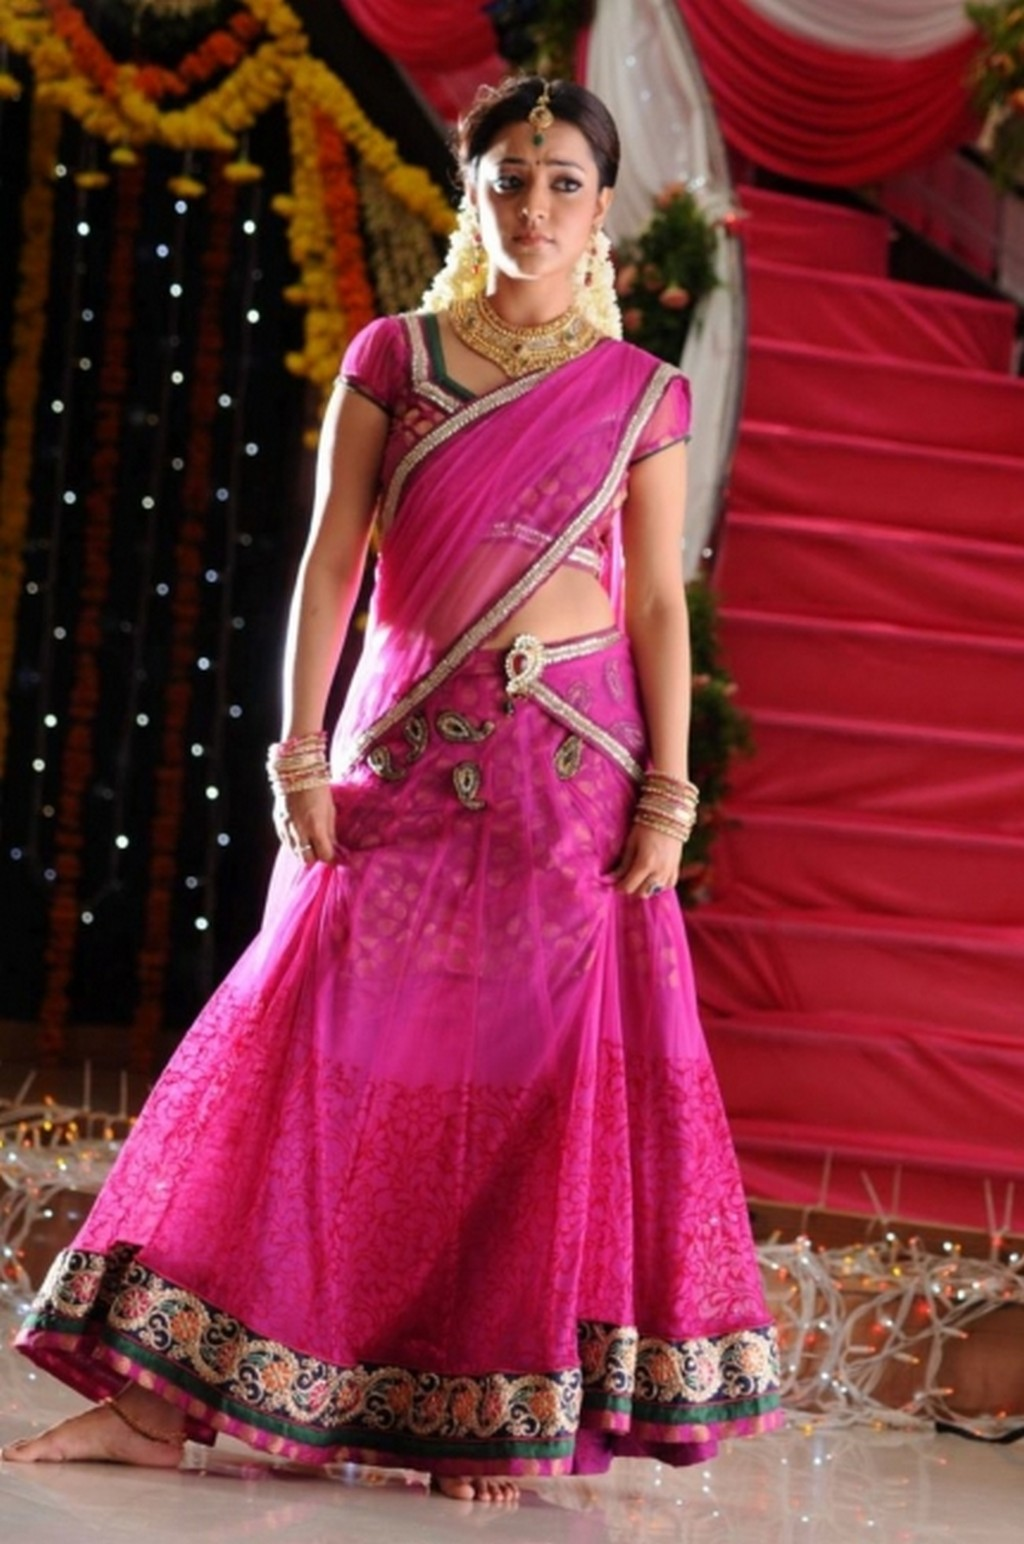 Nisha Agarwal navel in saree, Nisha Agarwal navel